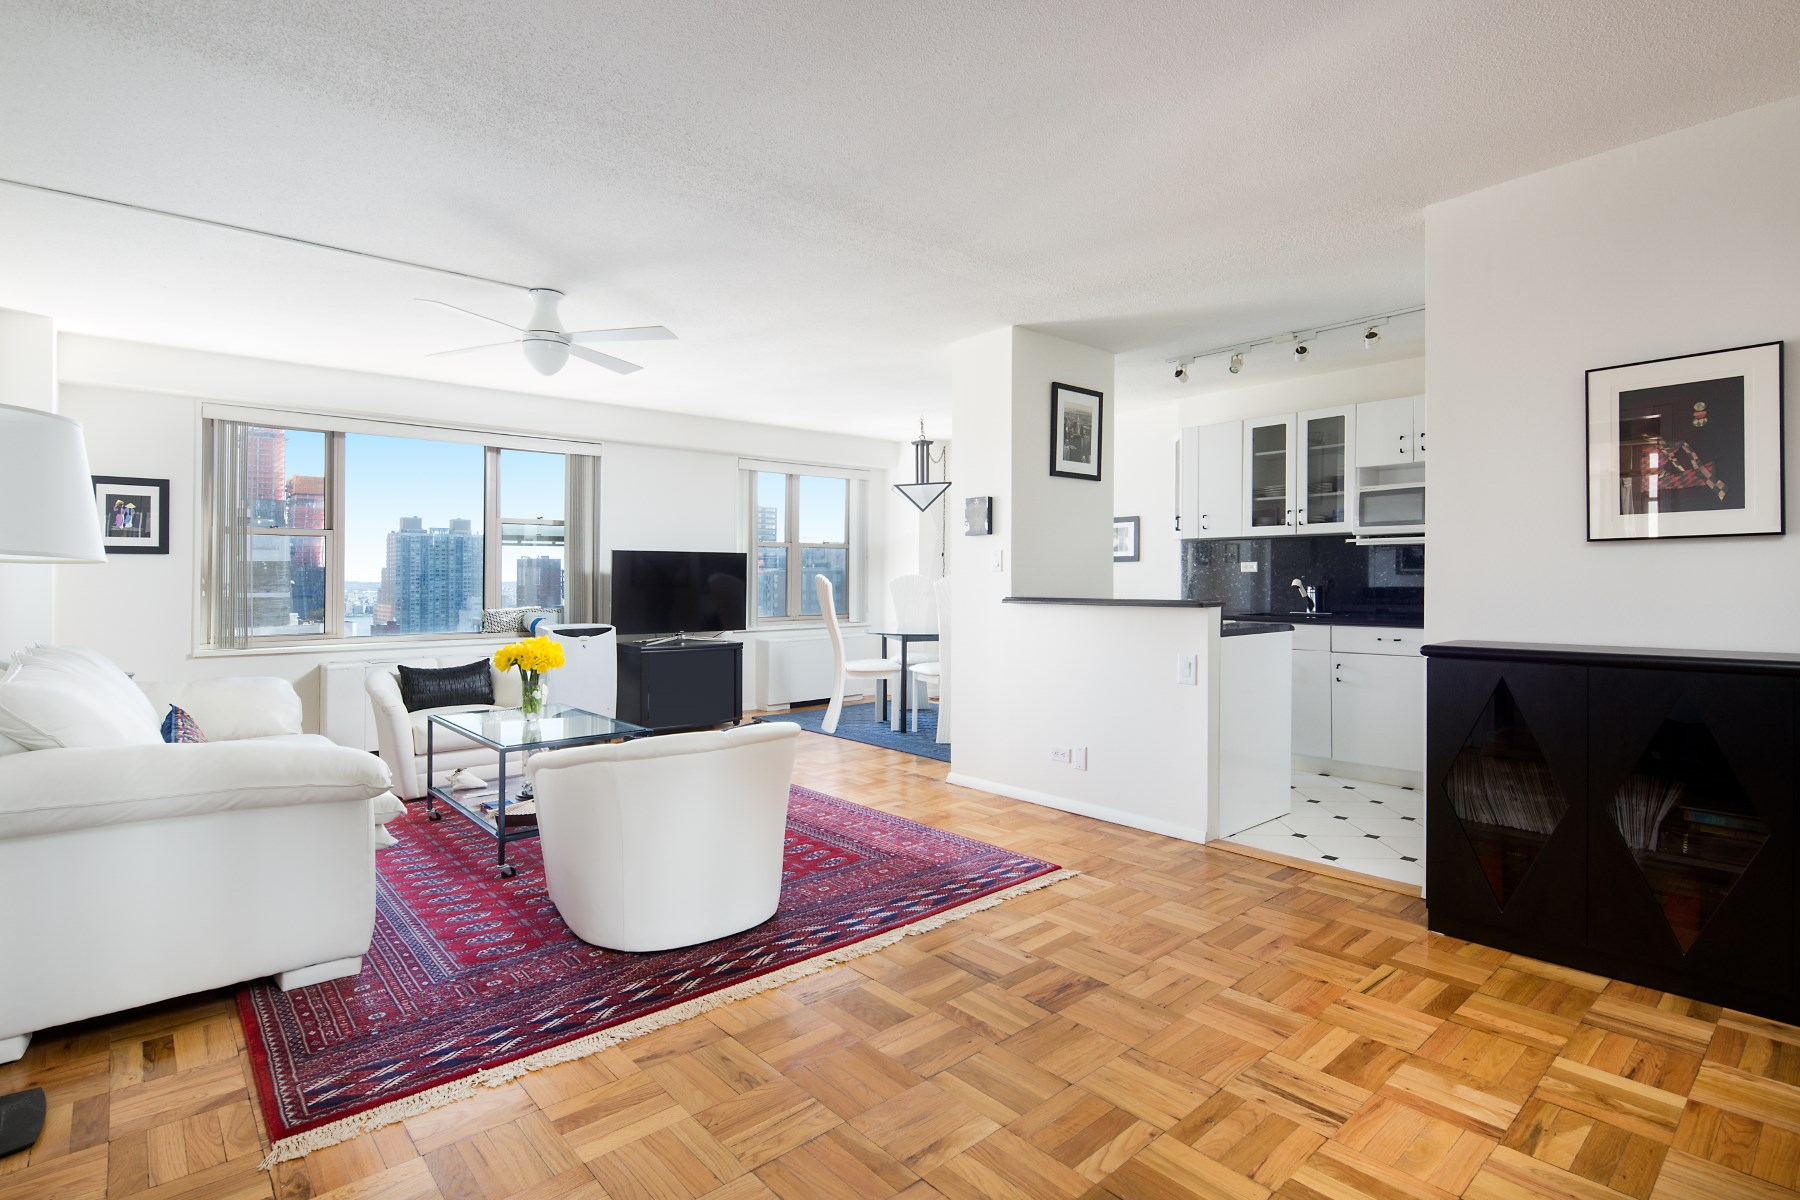 Co-op for Sale at 137 East 36th Street, Apt 19C 137 East 36th Street Apt 19C Murray Hill, New York, New York, 10016 United States